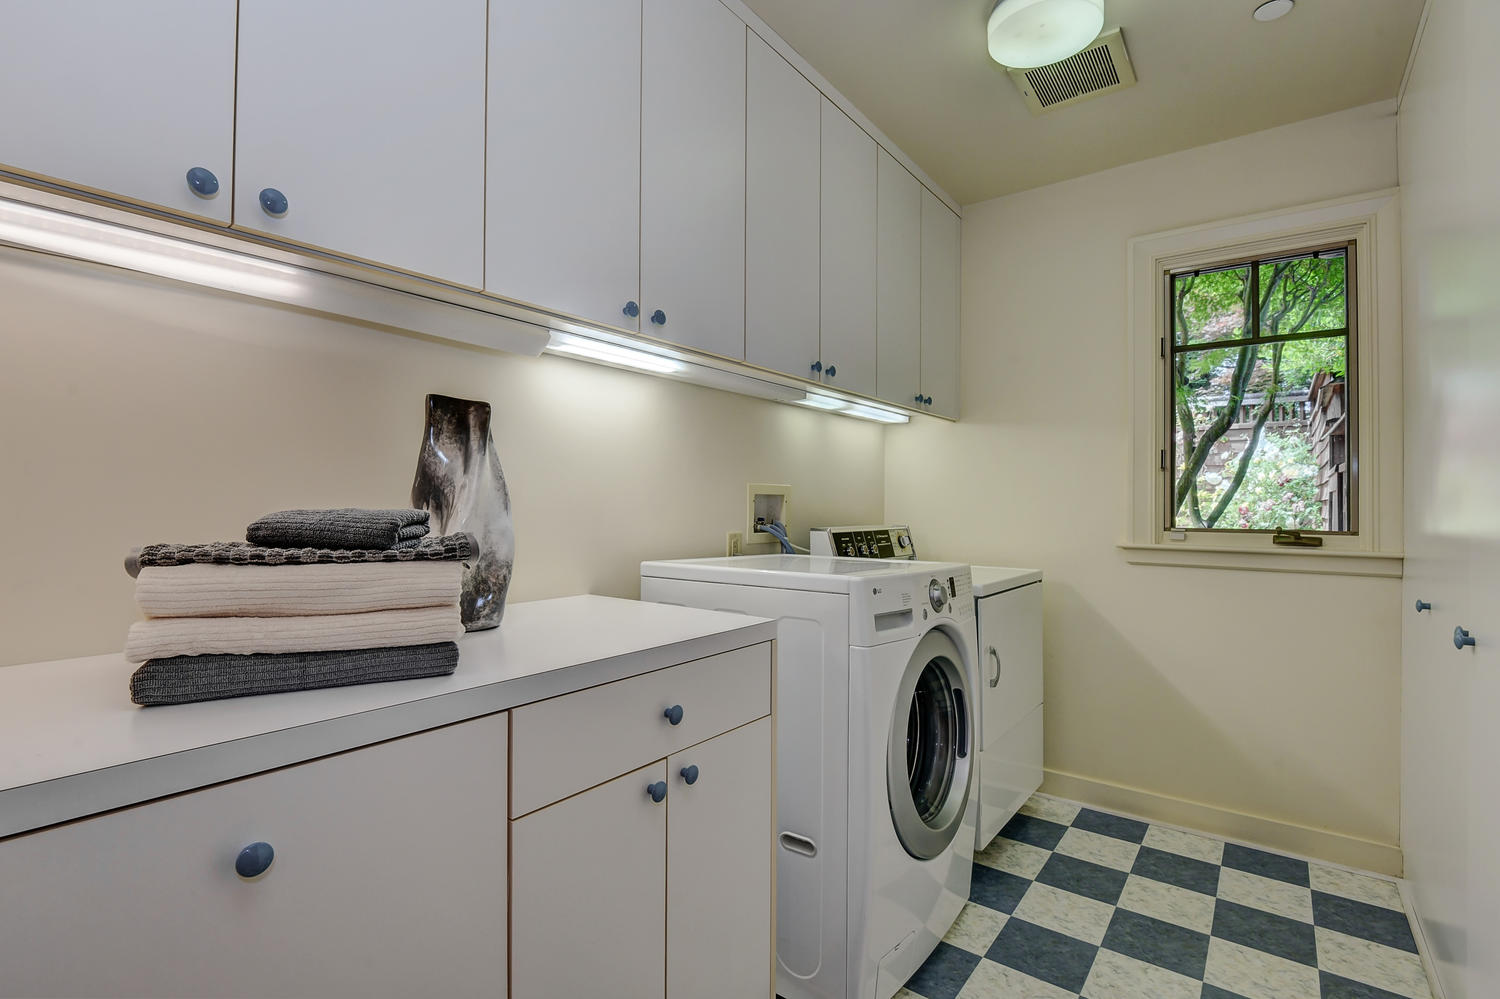 30_14833 Karl Ave Monte Sereno CA-large-037-68-Laundry Room-1500x999-72dpi.jpg